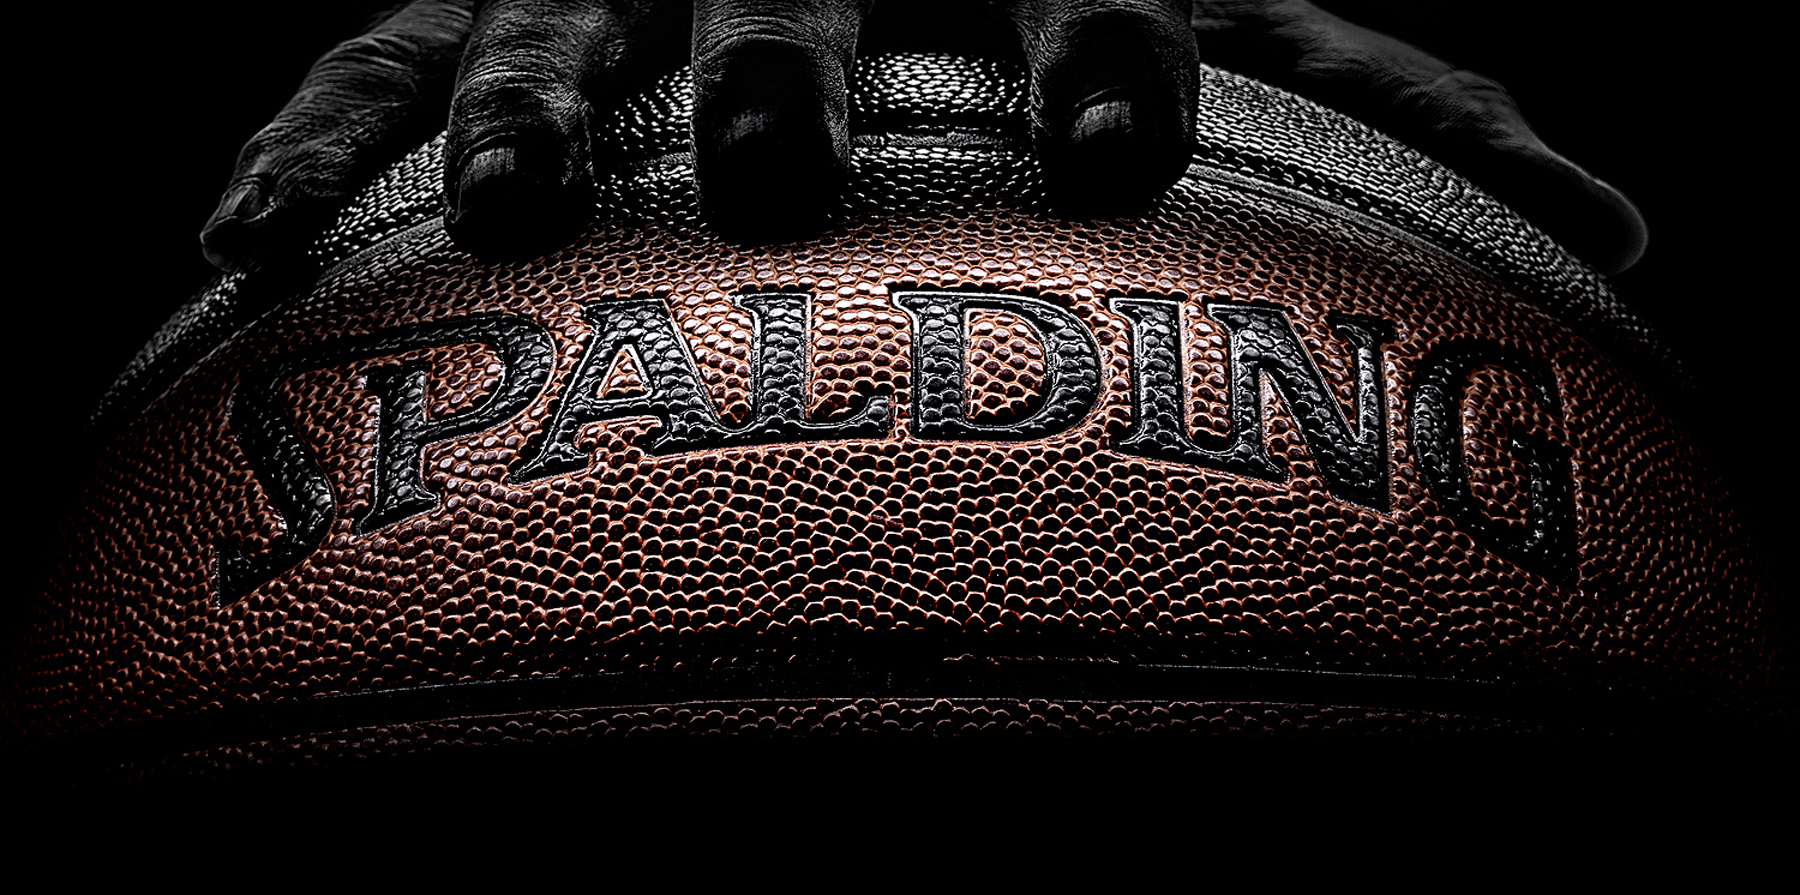 Spalding basketball | Dovis Bird Agency Photography